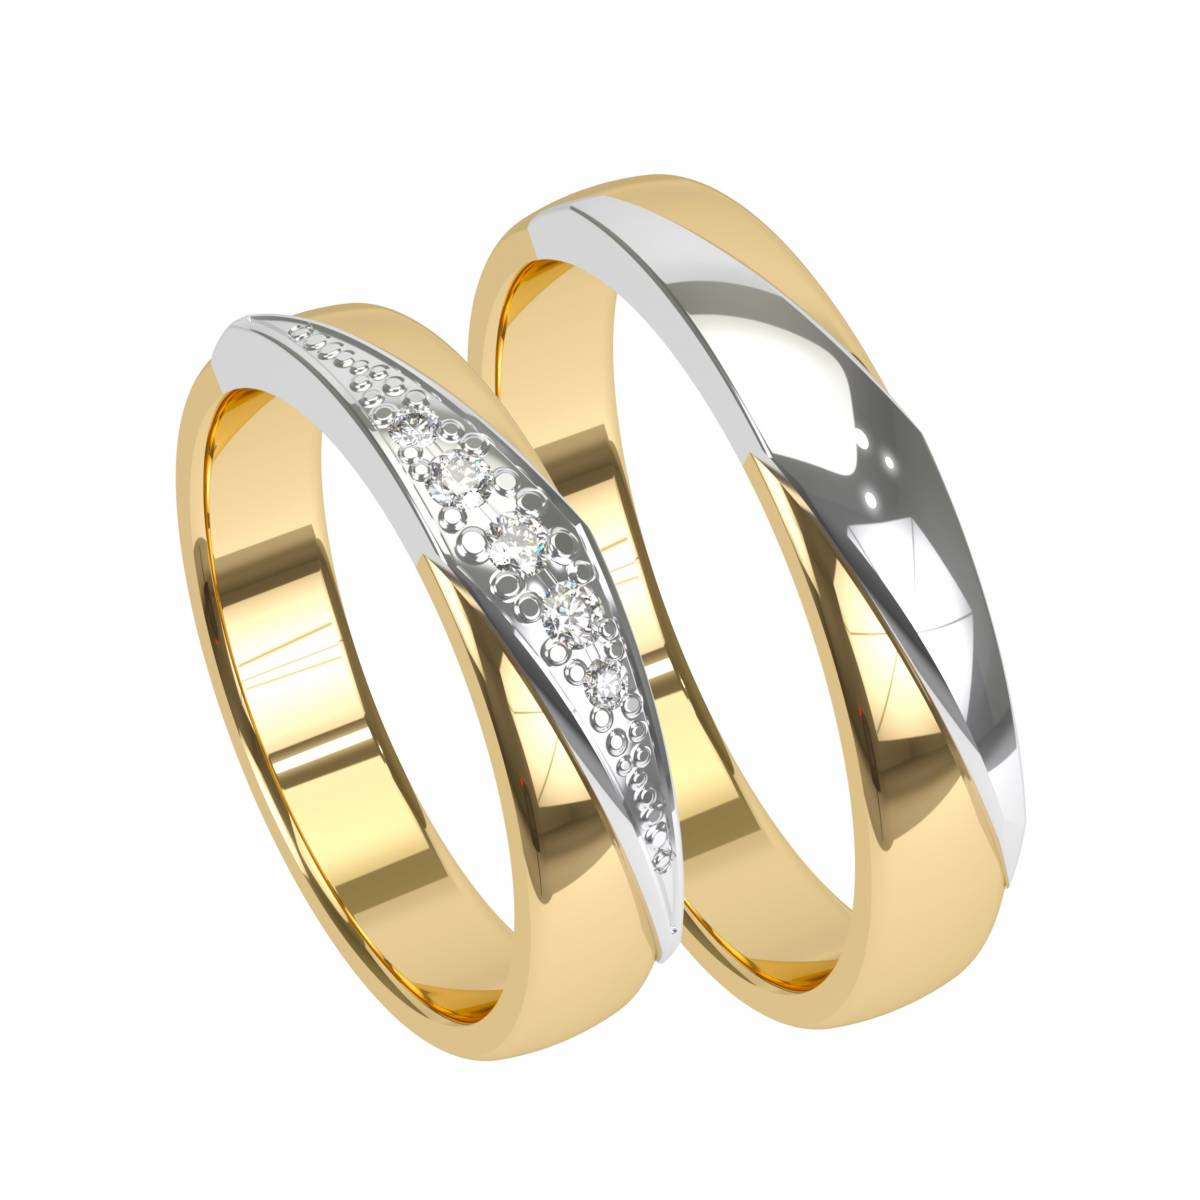 Juwelier Jan Maes - Trouwringen - Verlovingsringen - Juwelen - House of Weddings - 3